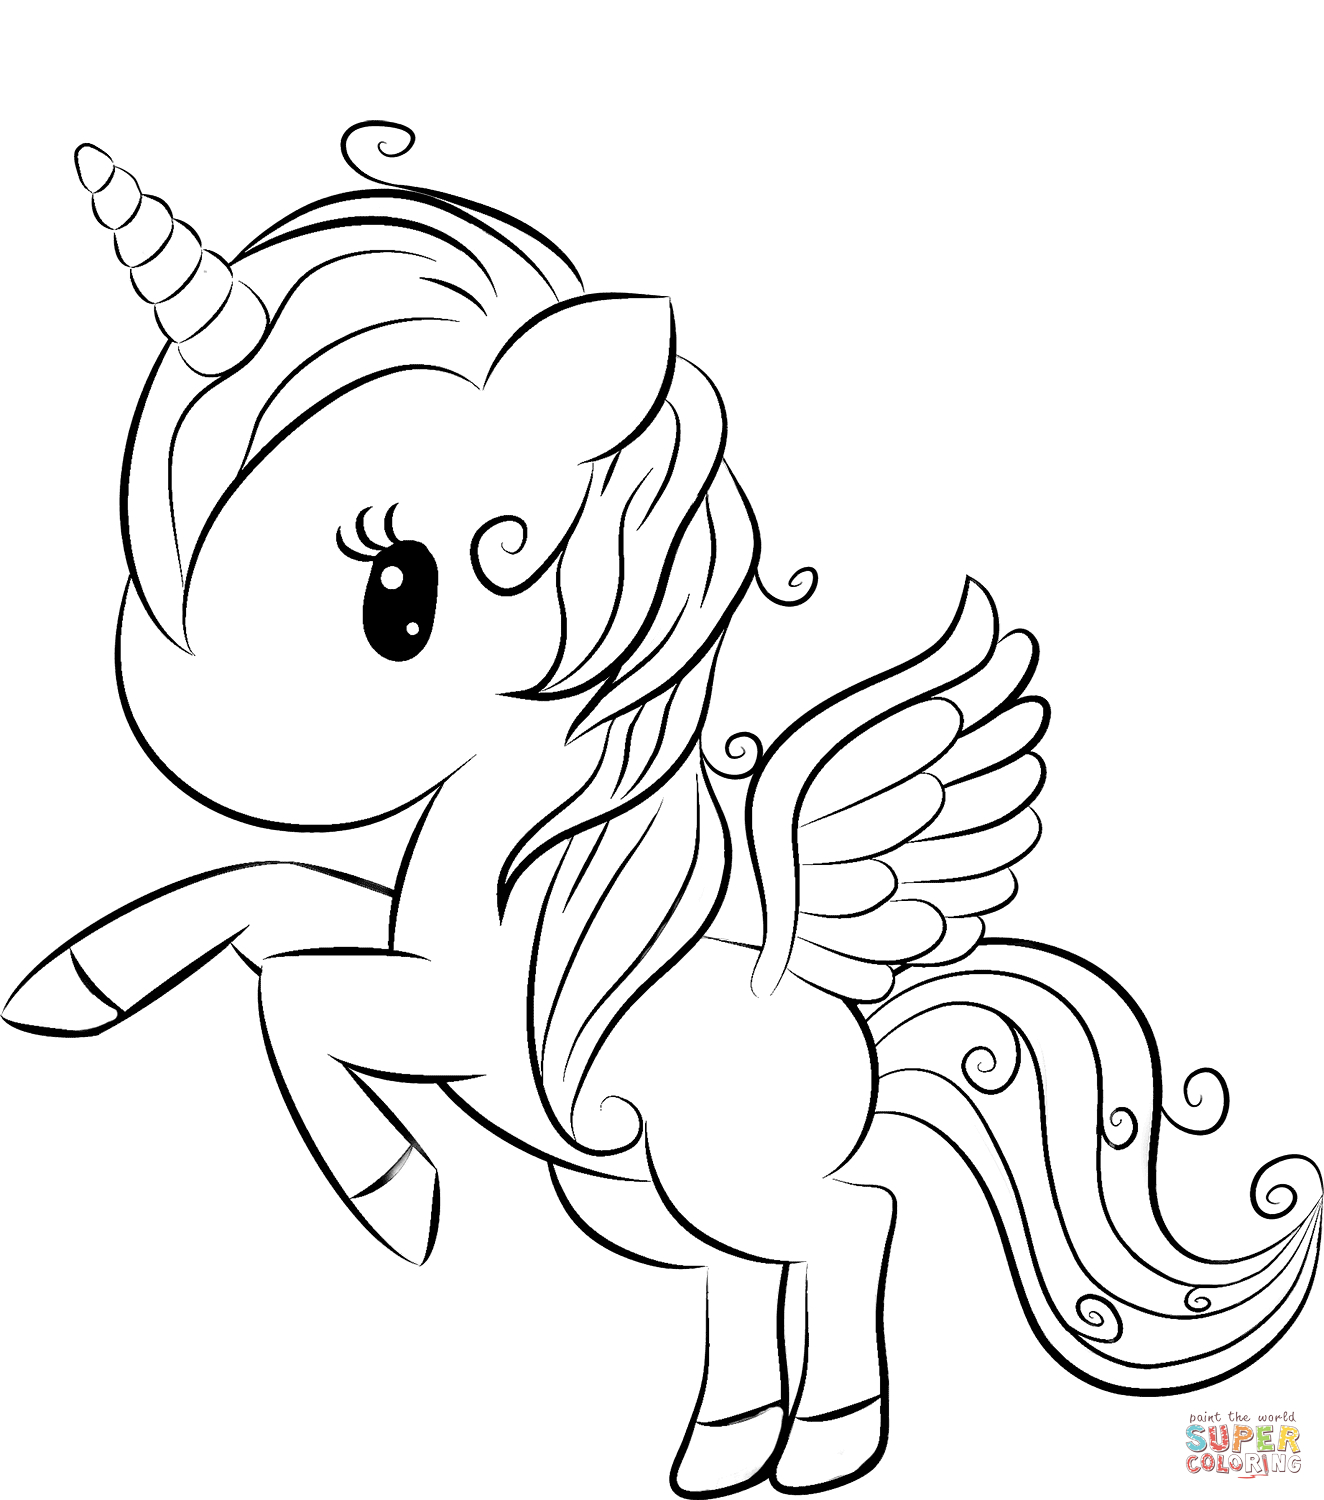 25+ Exclusive Image of Printable Unicorn Coloring Pages